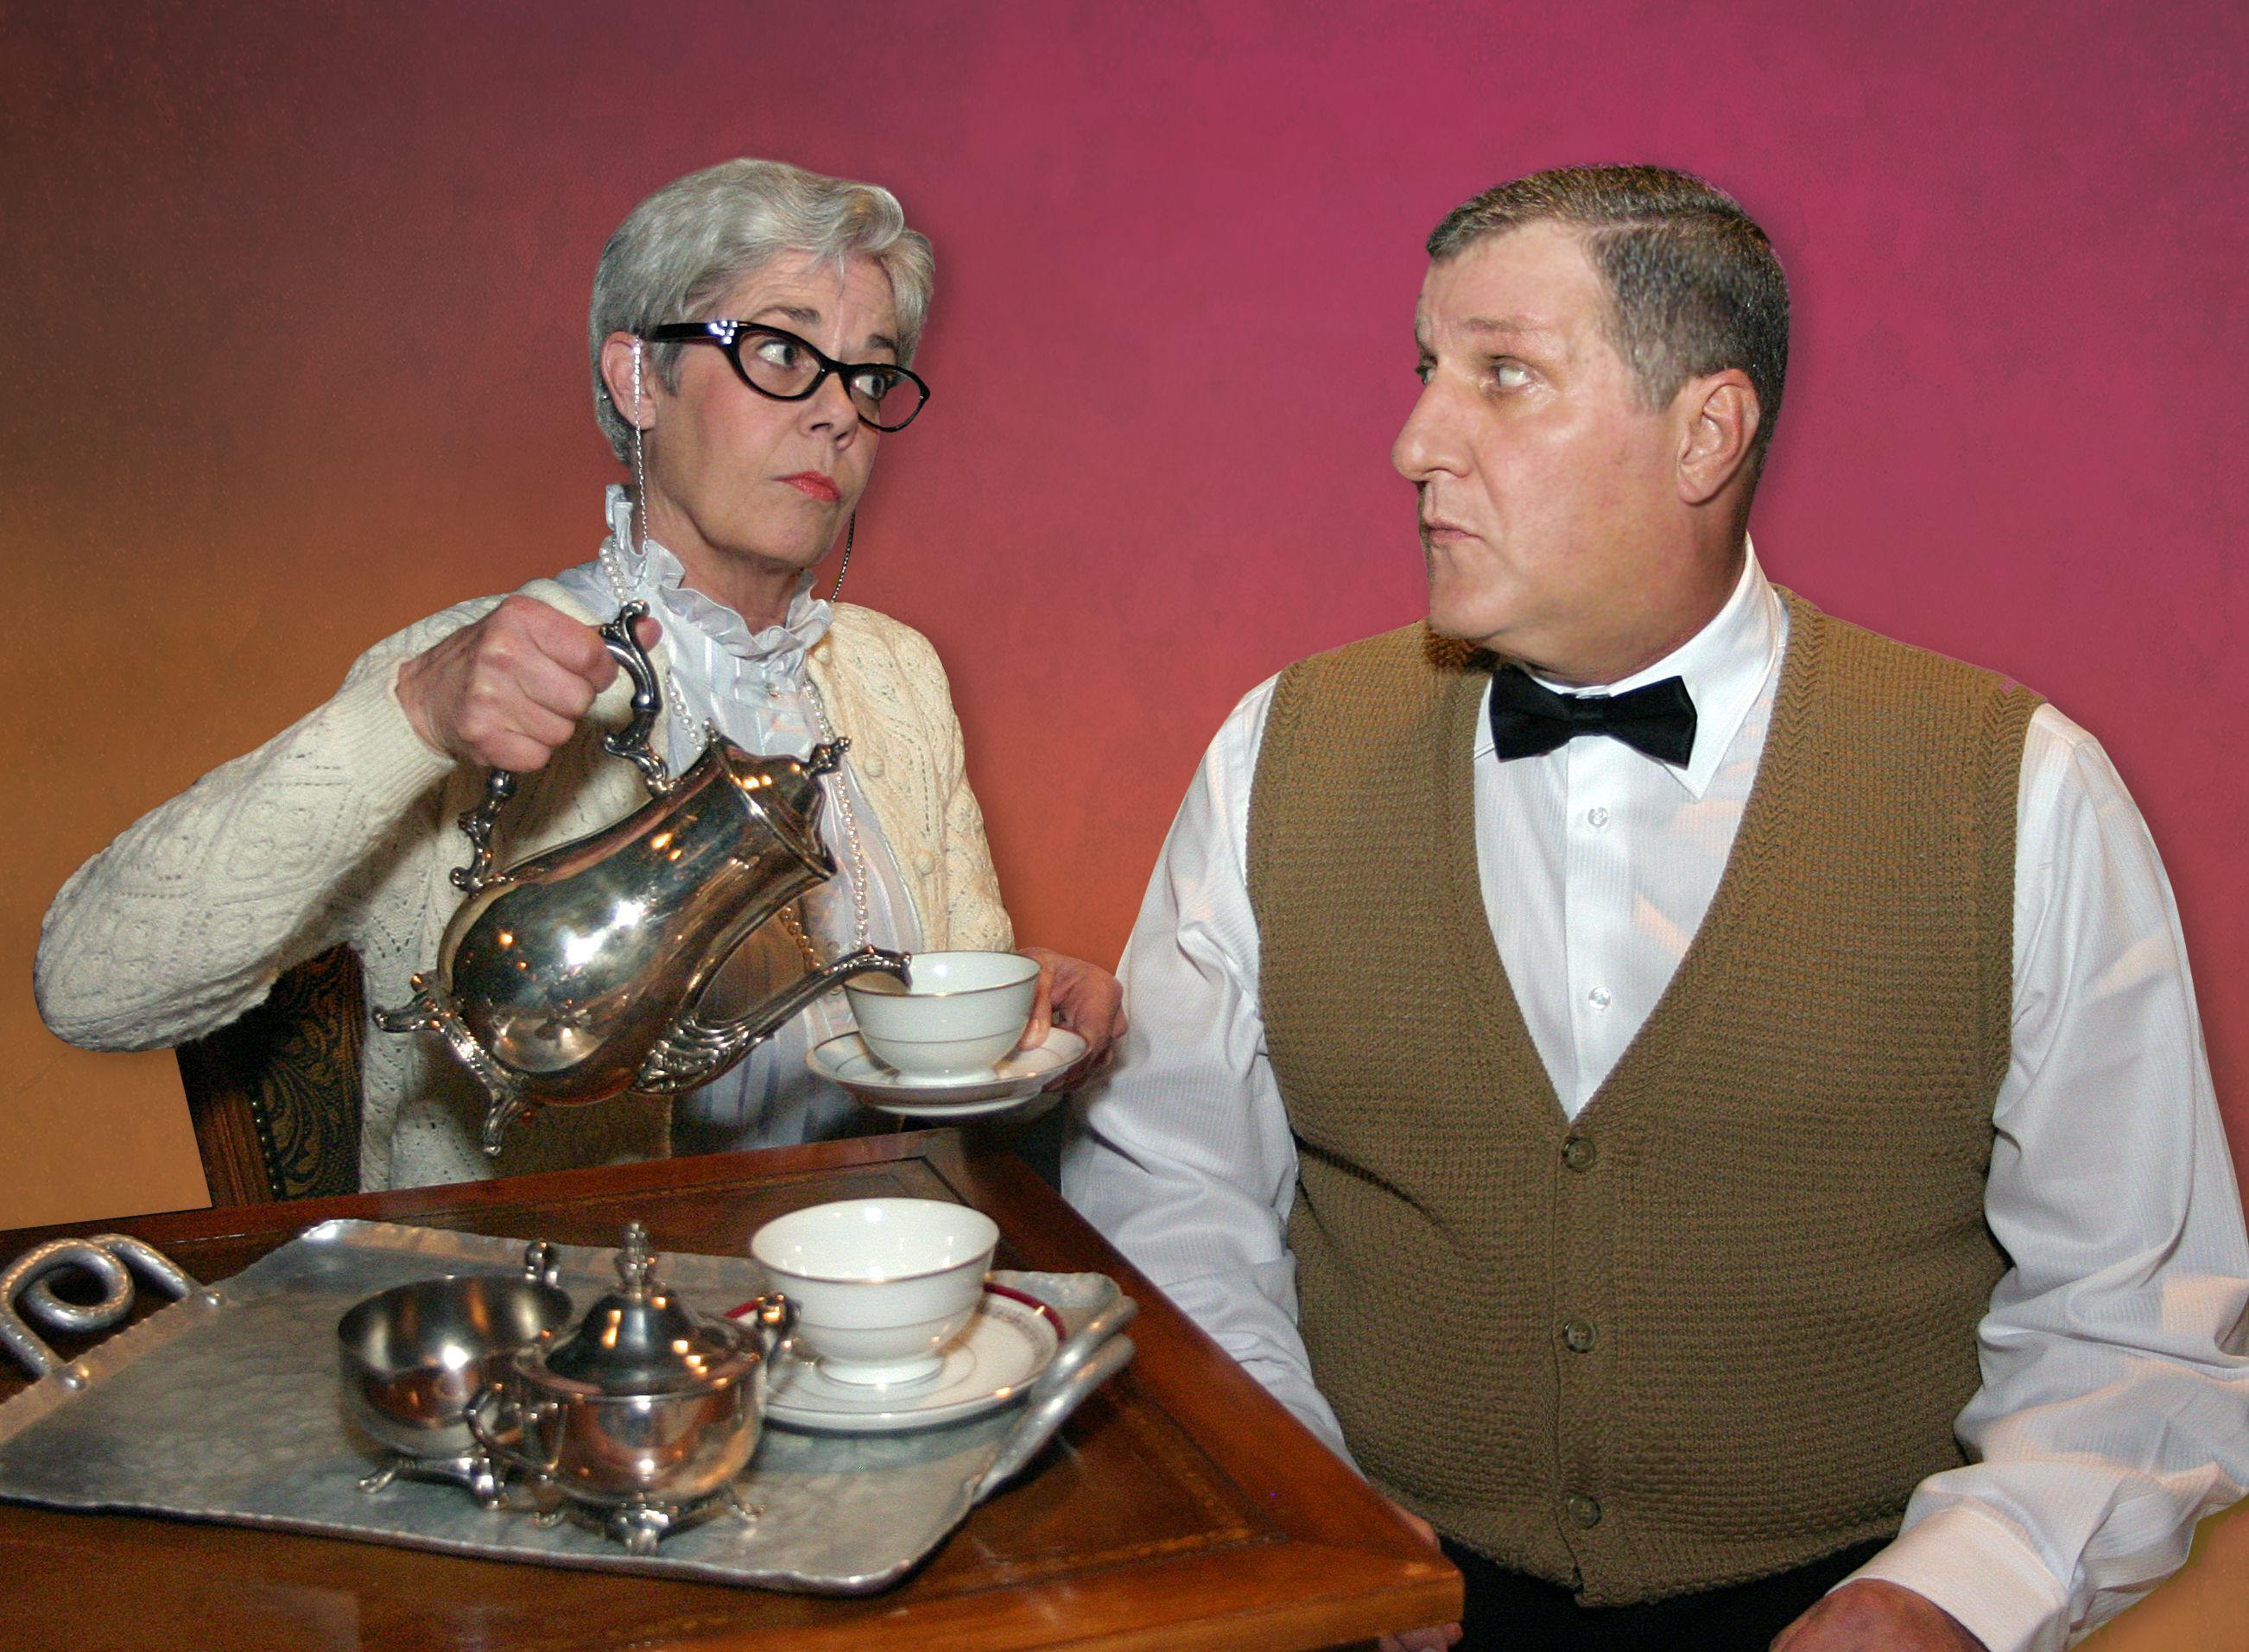 Mrs. Mannerly (Linda Abronski) takes on a new student in her etiquette class, young Master Jeffrey (Stephen F. Vrtol III).